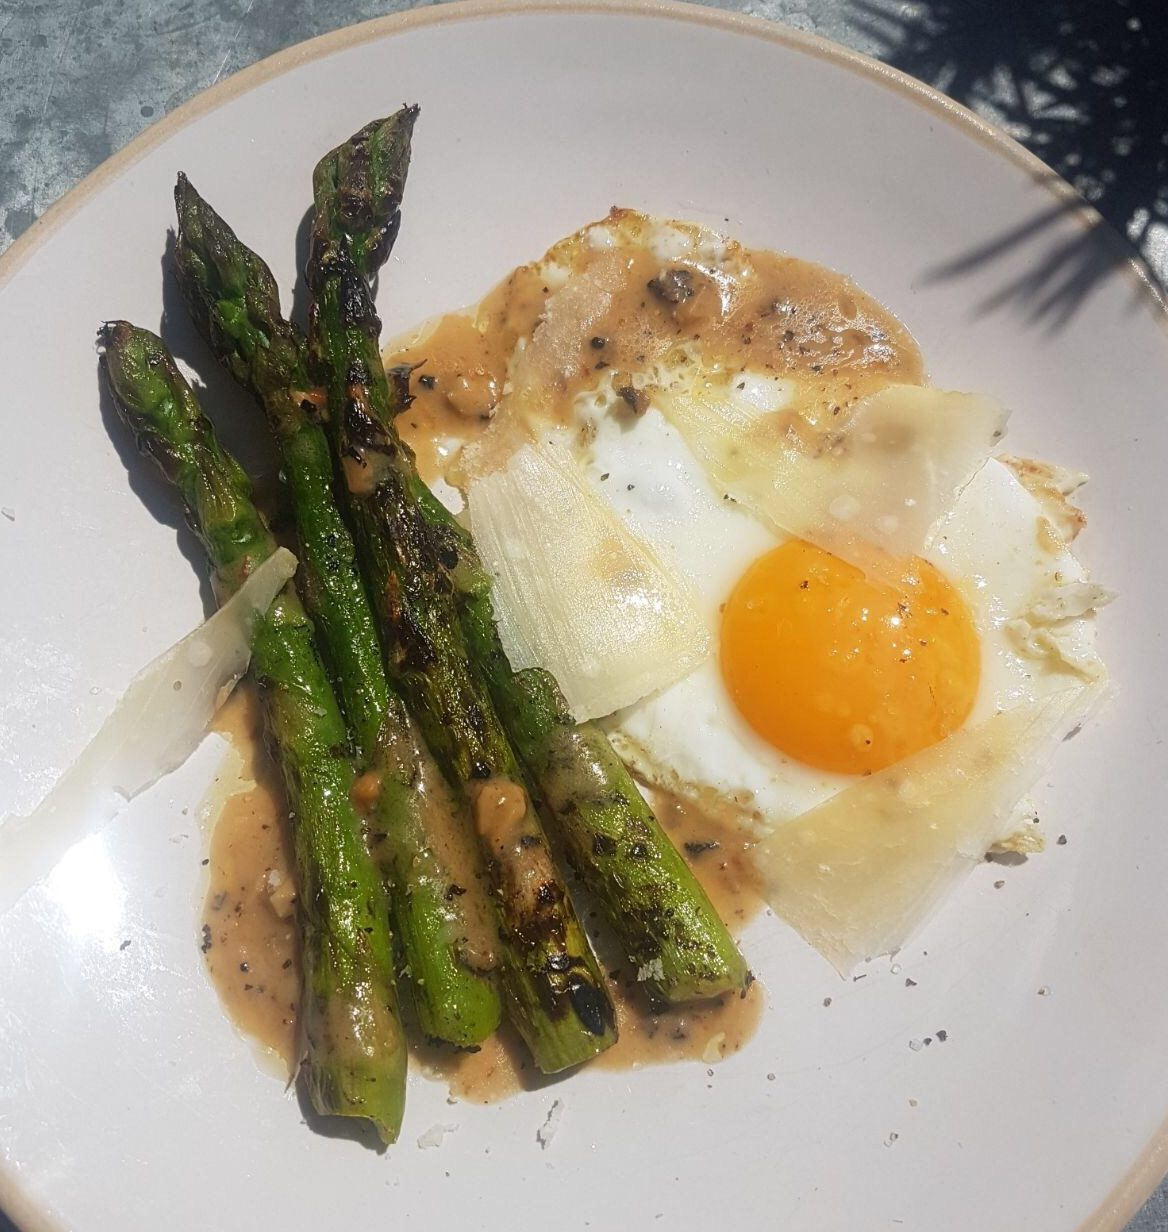 Asparagus with truffled fried egg and parmesan